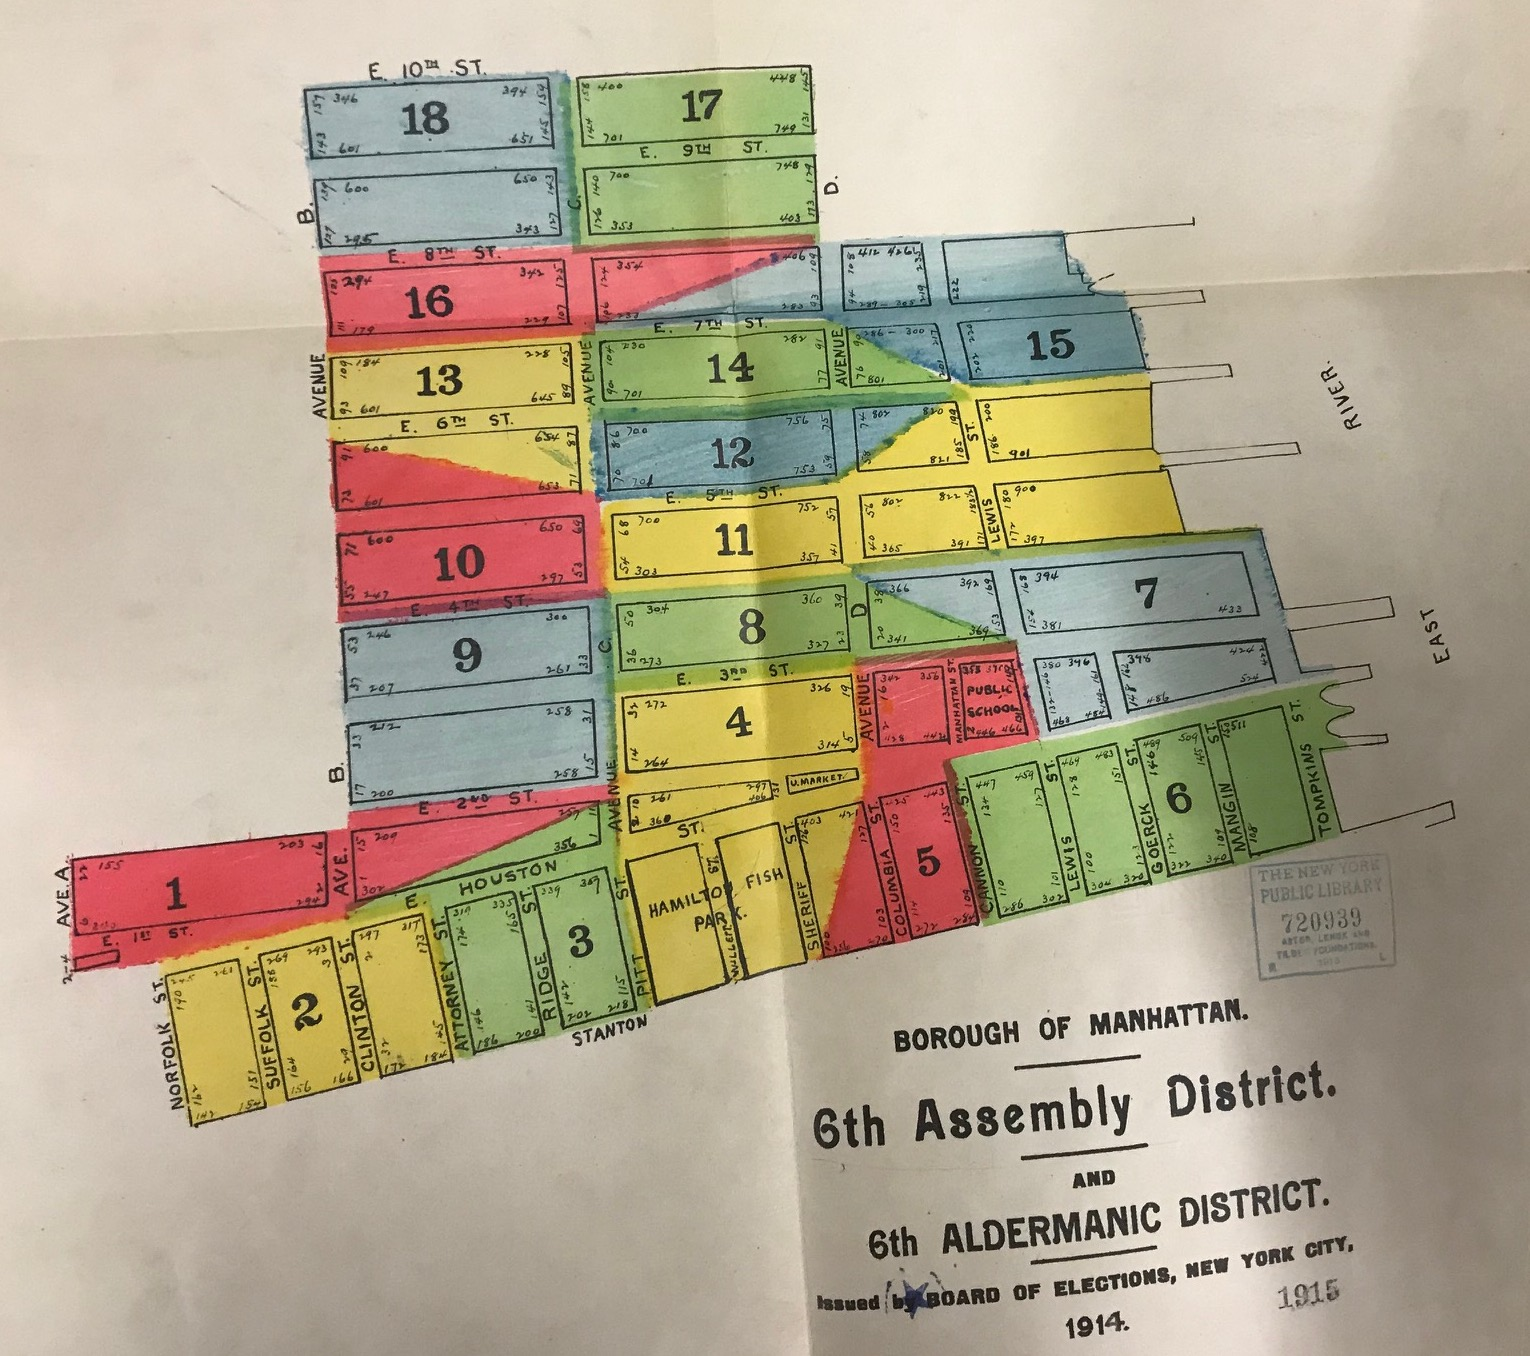 6th Assembly District Map, 1914